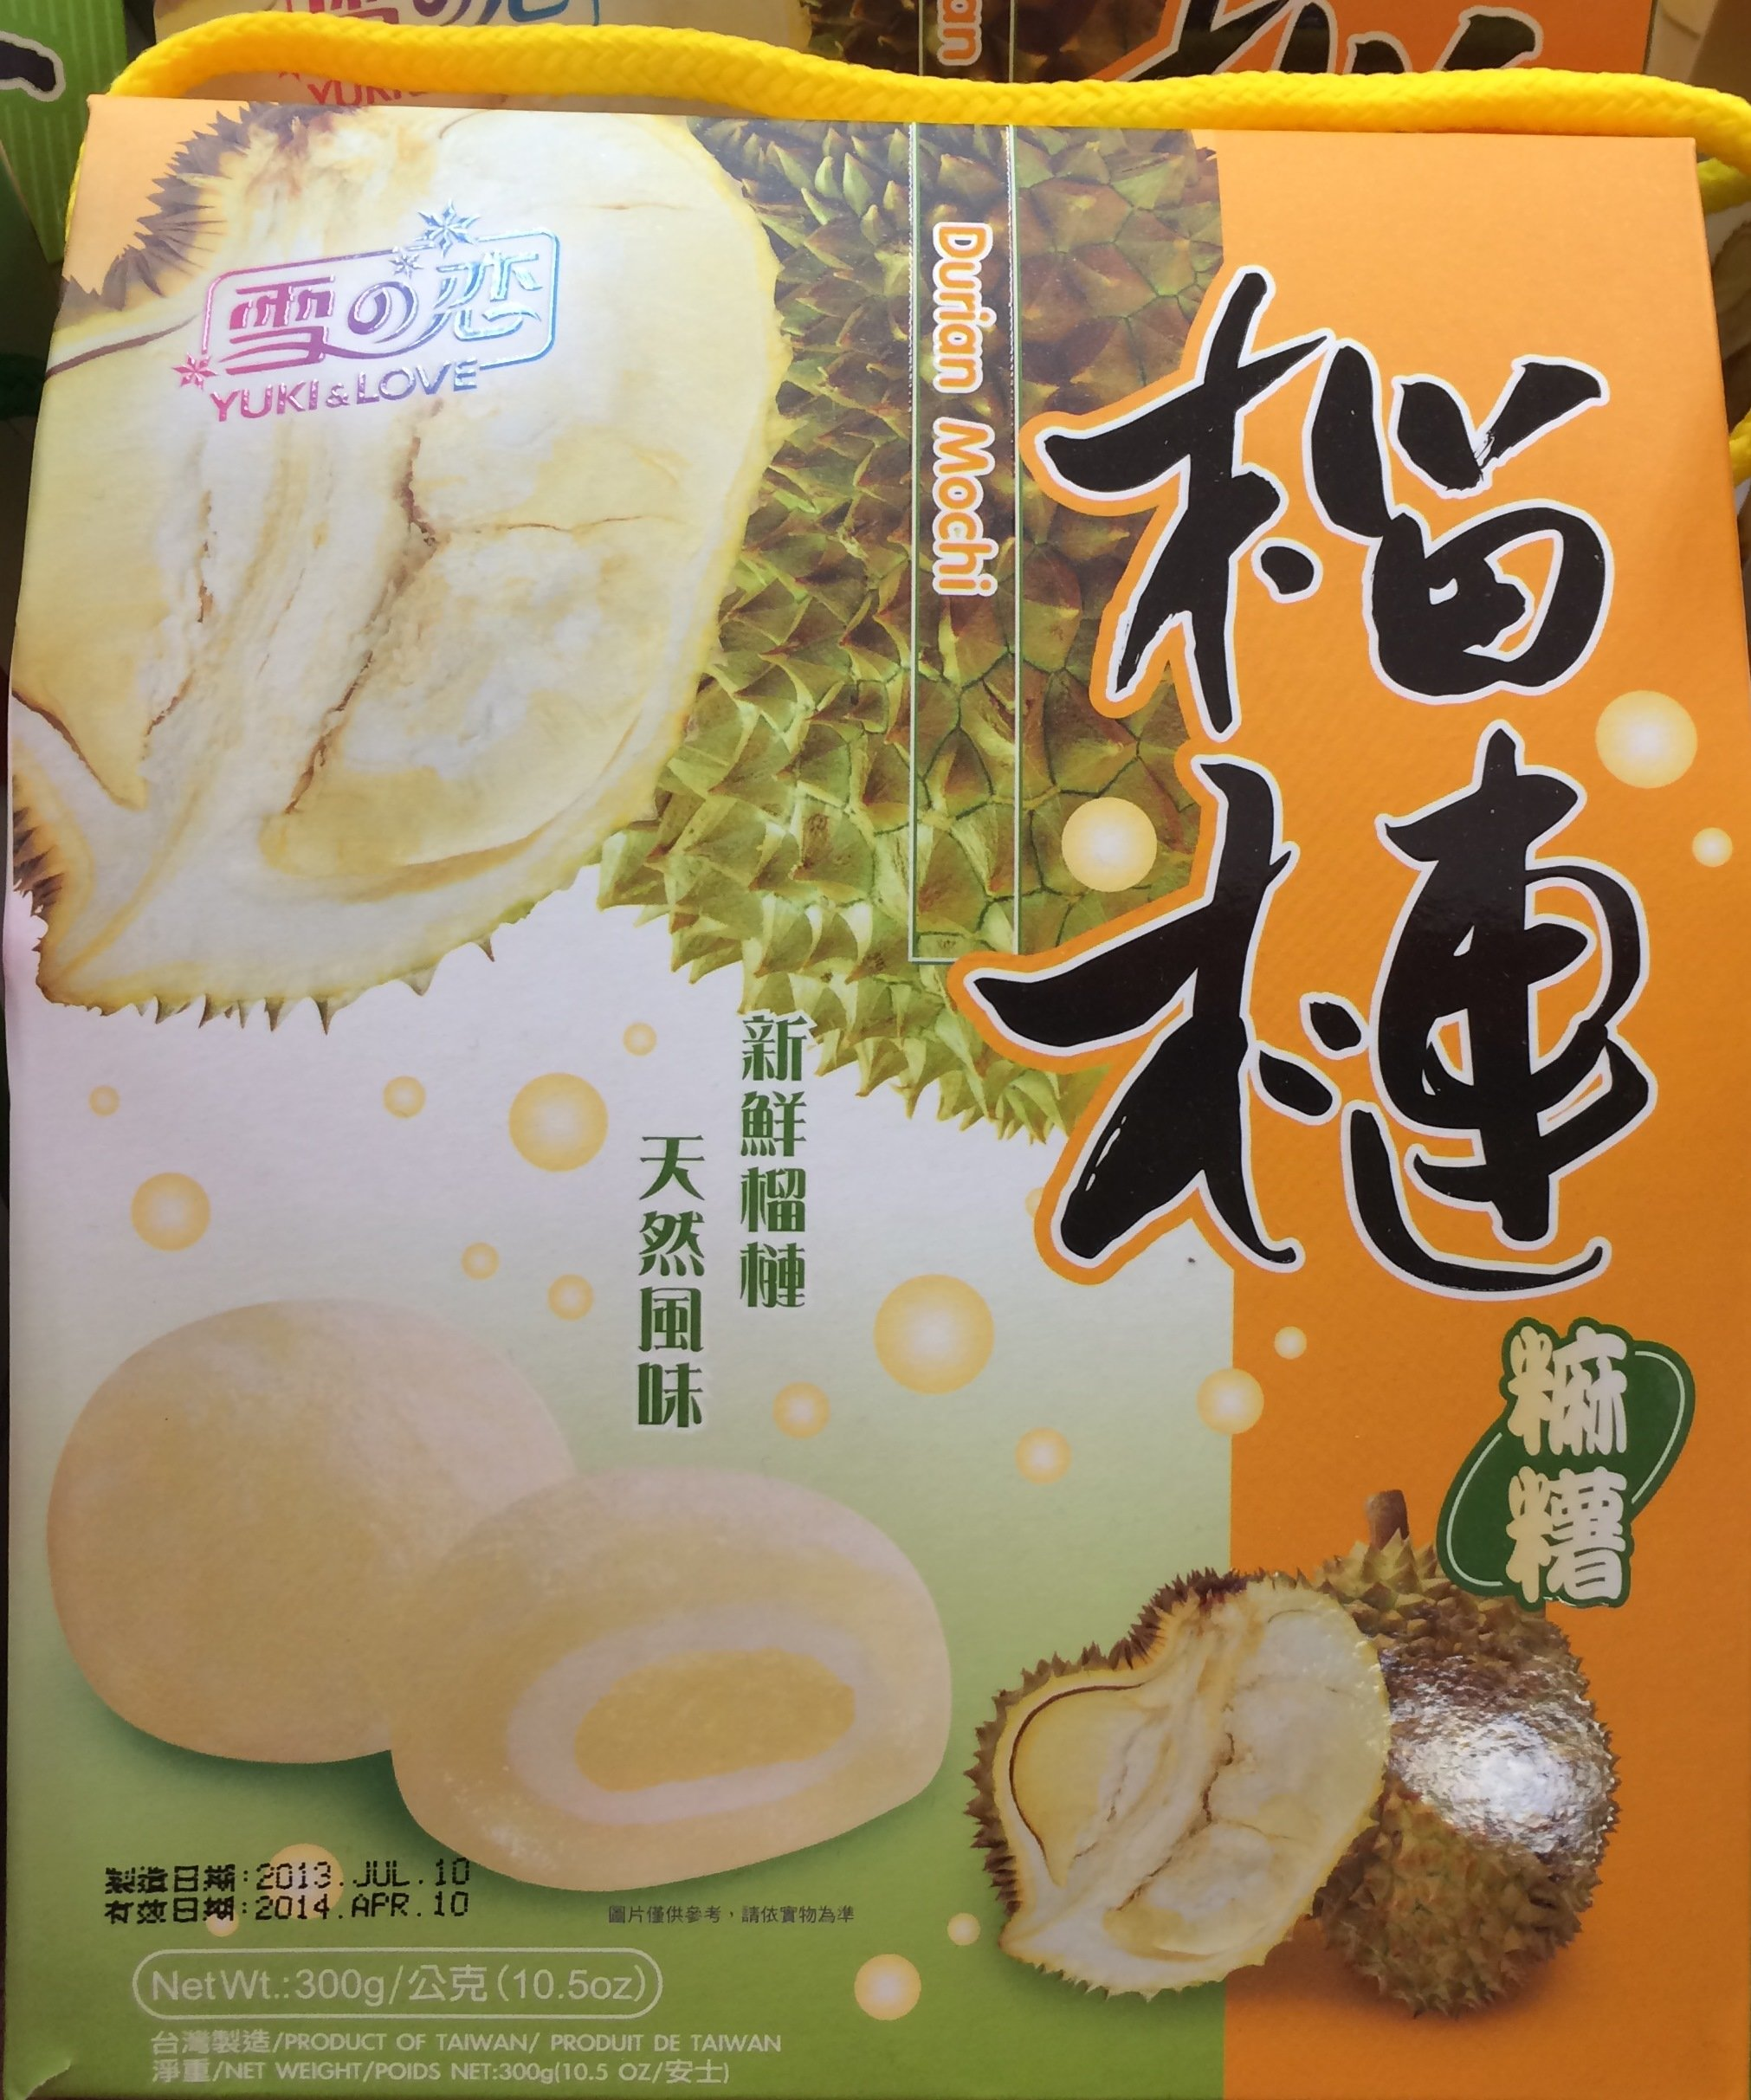 2 x 10.5 Yuki & Love Japanese Rice Cake Mochi Durian by Yuki & Love